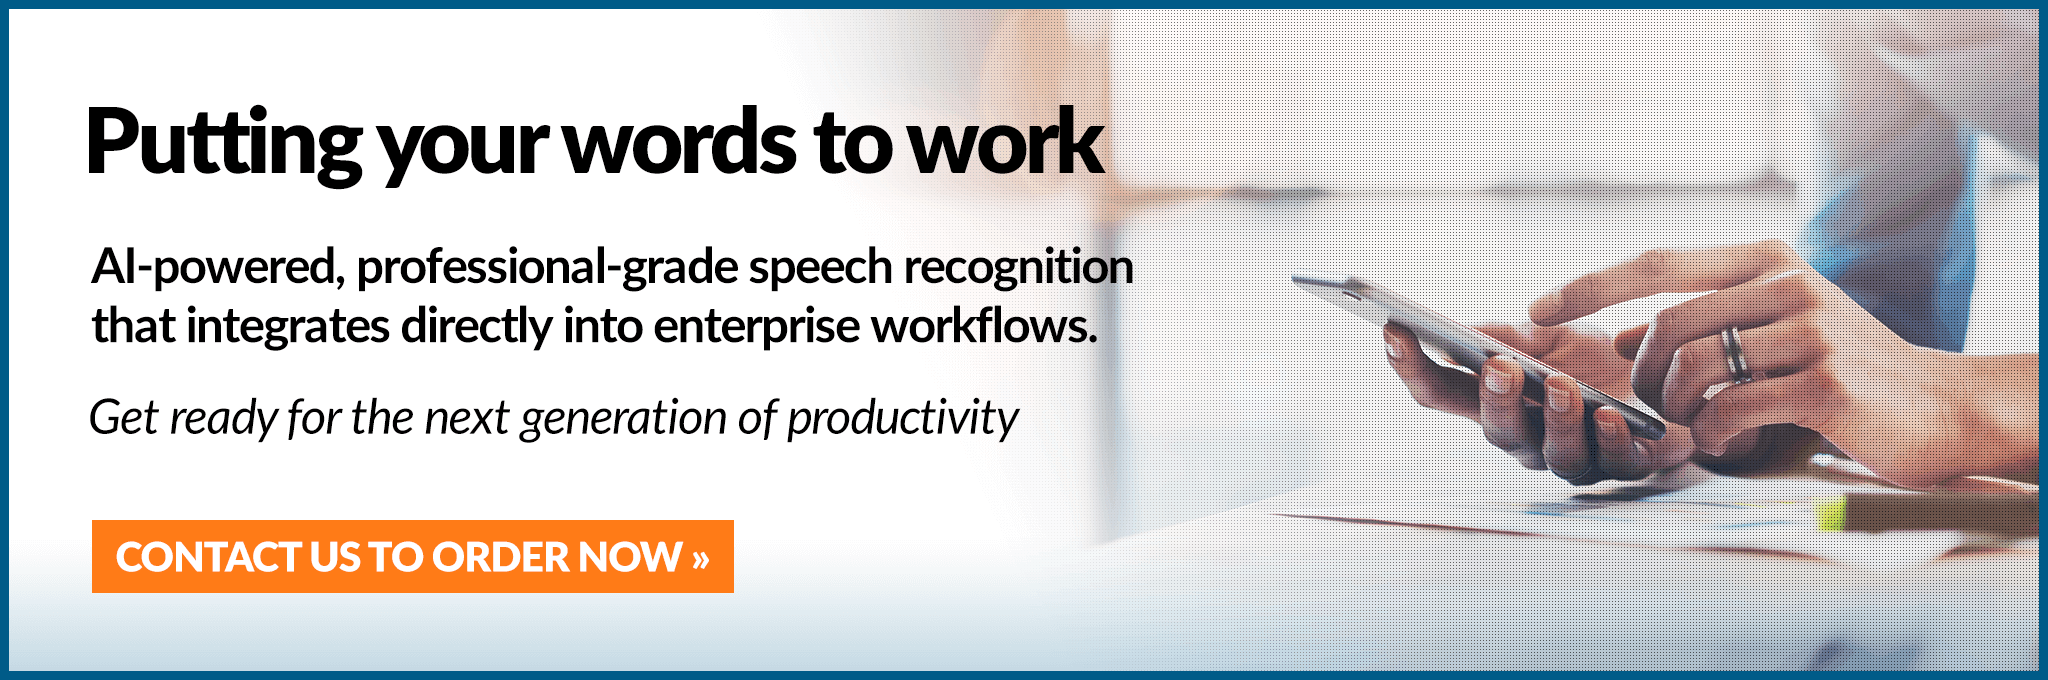 Putting your words to work. AI-powered, professional-grade speech recognitionthat integrates directly into enterprise workflows. Get ready for the next generation of productivity.